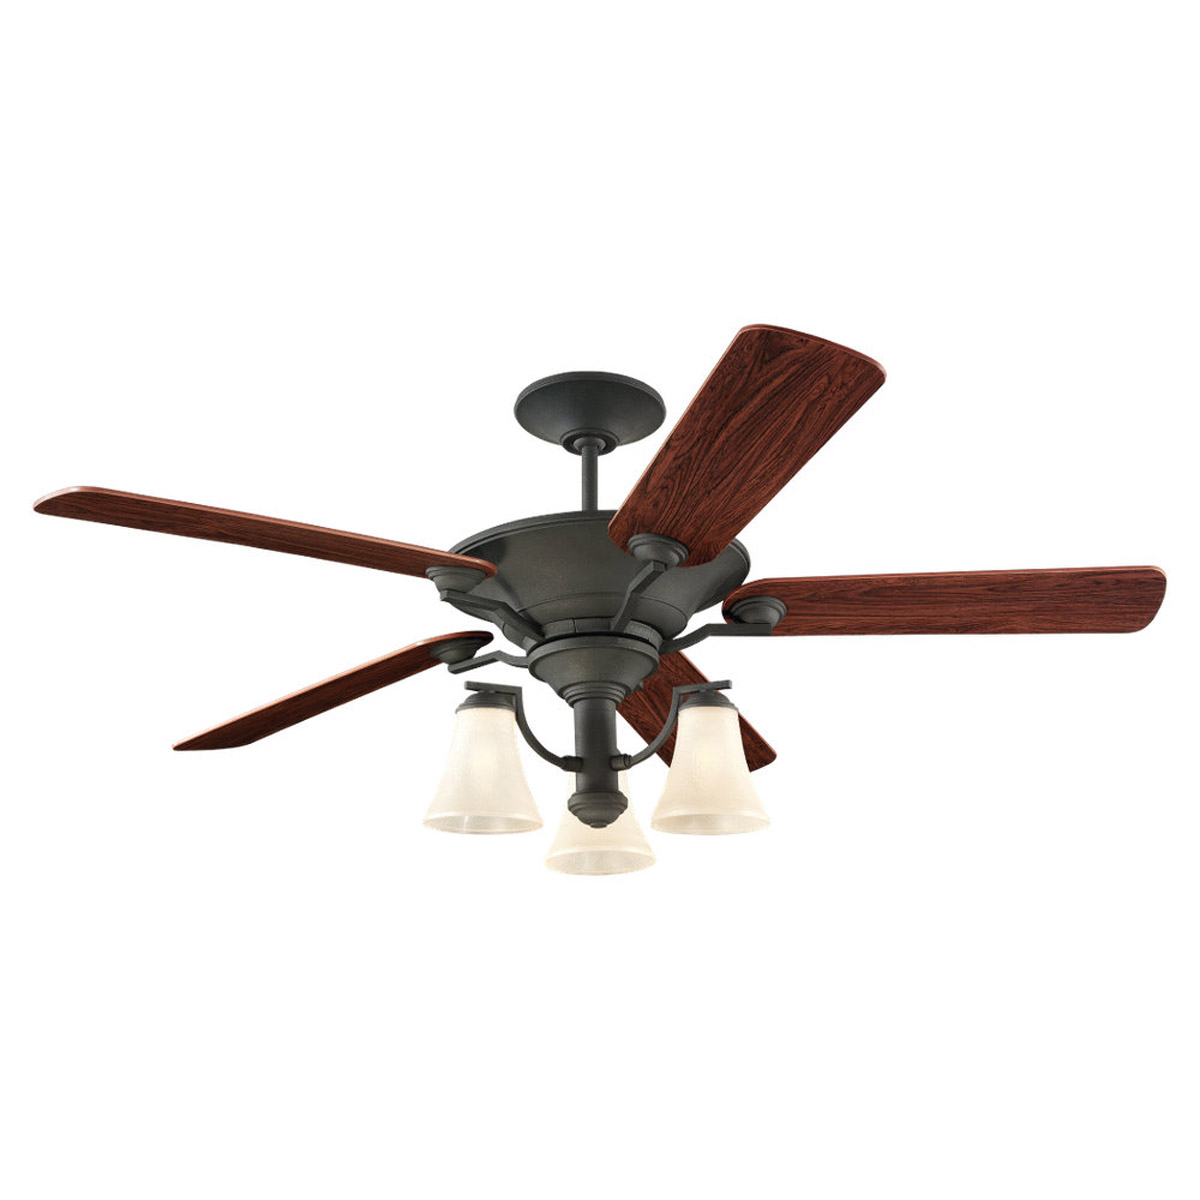 Sea Gull Lighting 3 Light 56in Somerton Ceiling Fan in Blacksmith 15170B-839